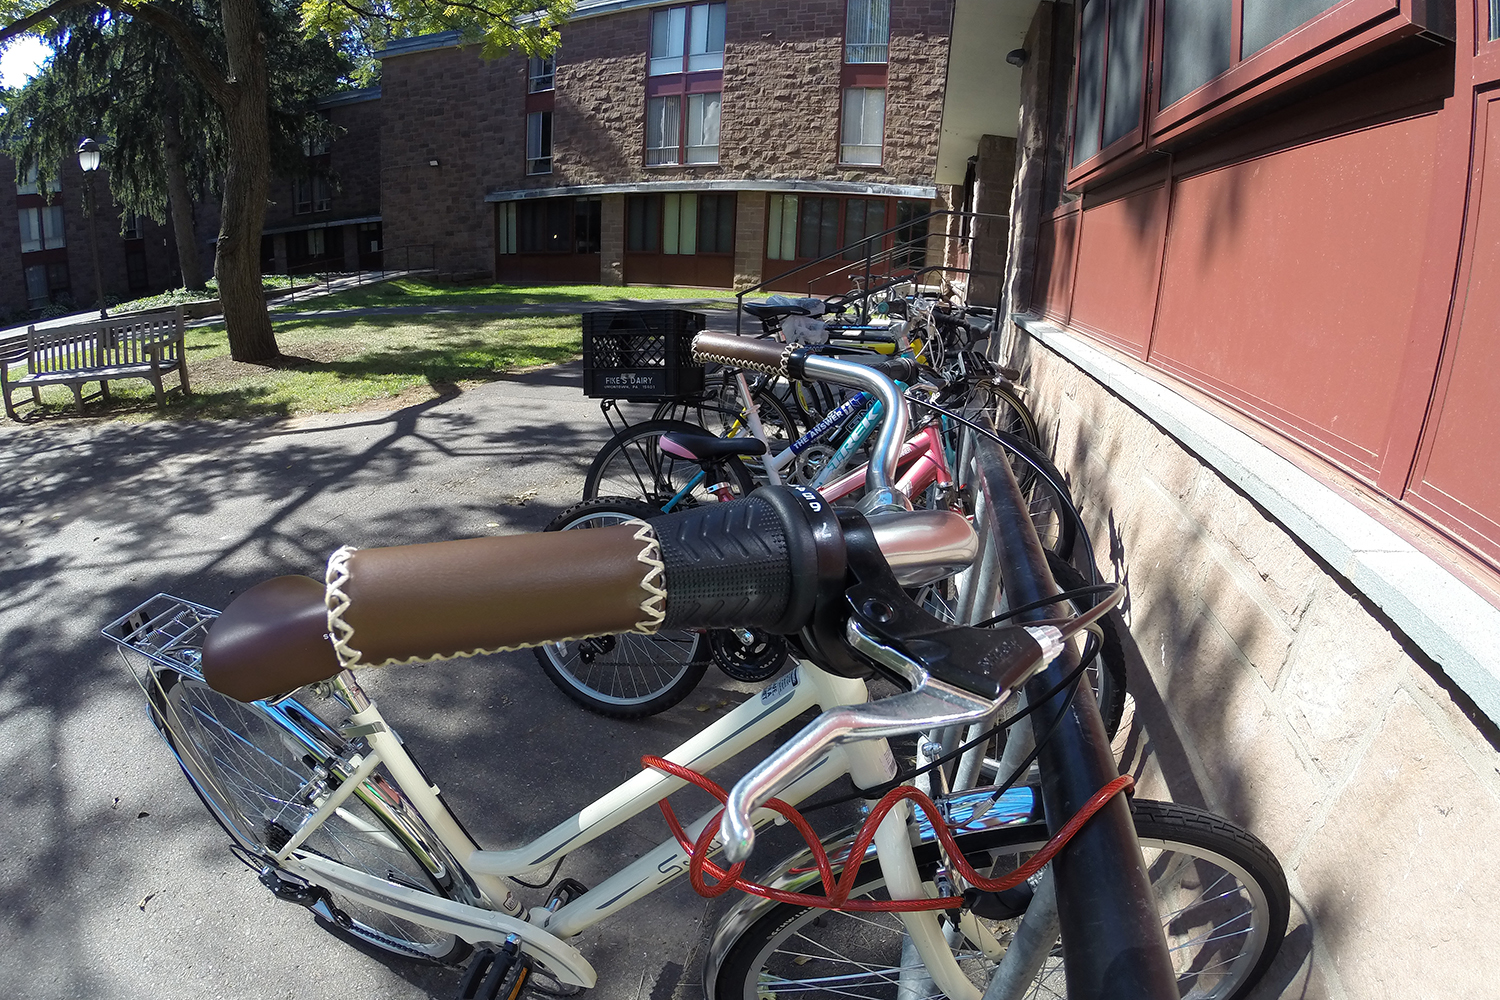 Bikes at the Butterfields.